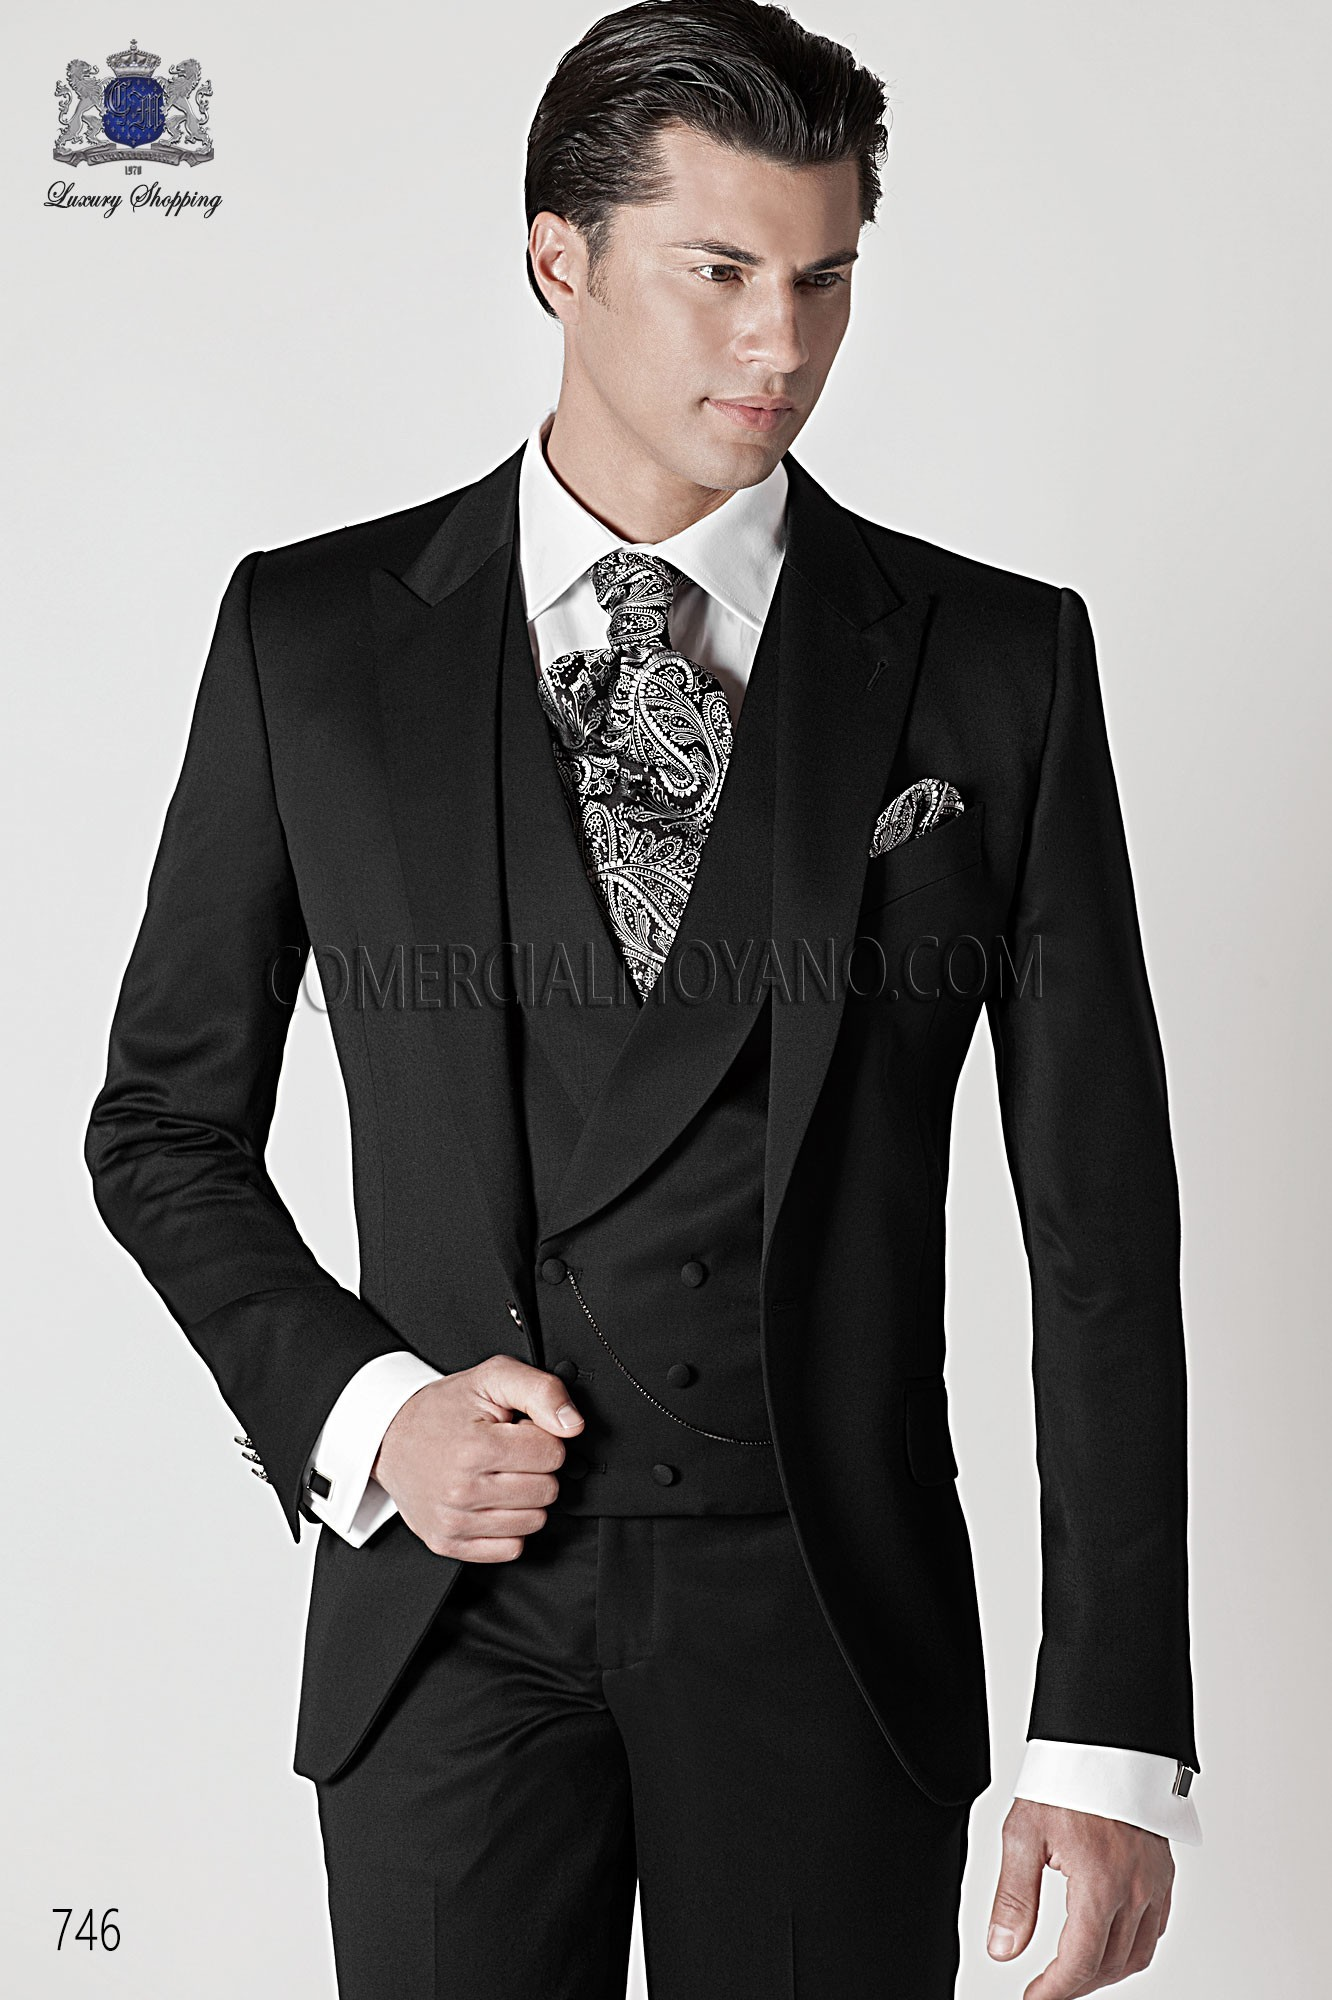 Fashion black men wedding suit, model: 746 Ottavio Nuccio Gala ...